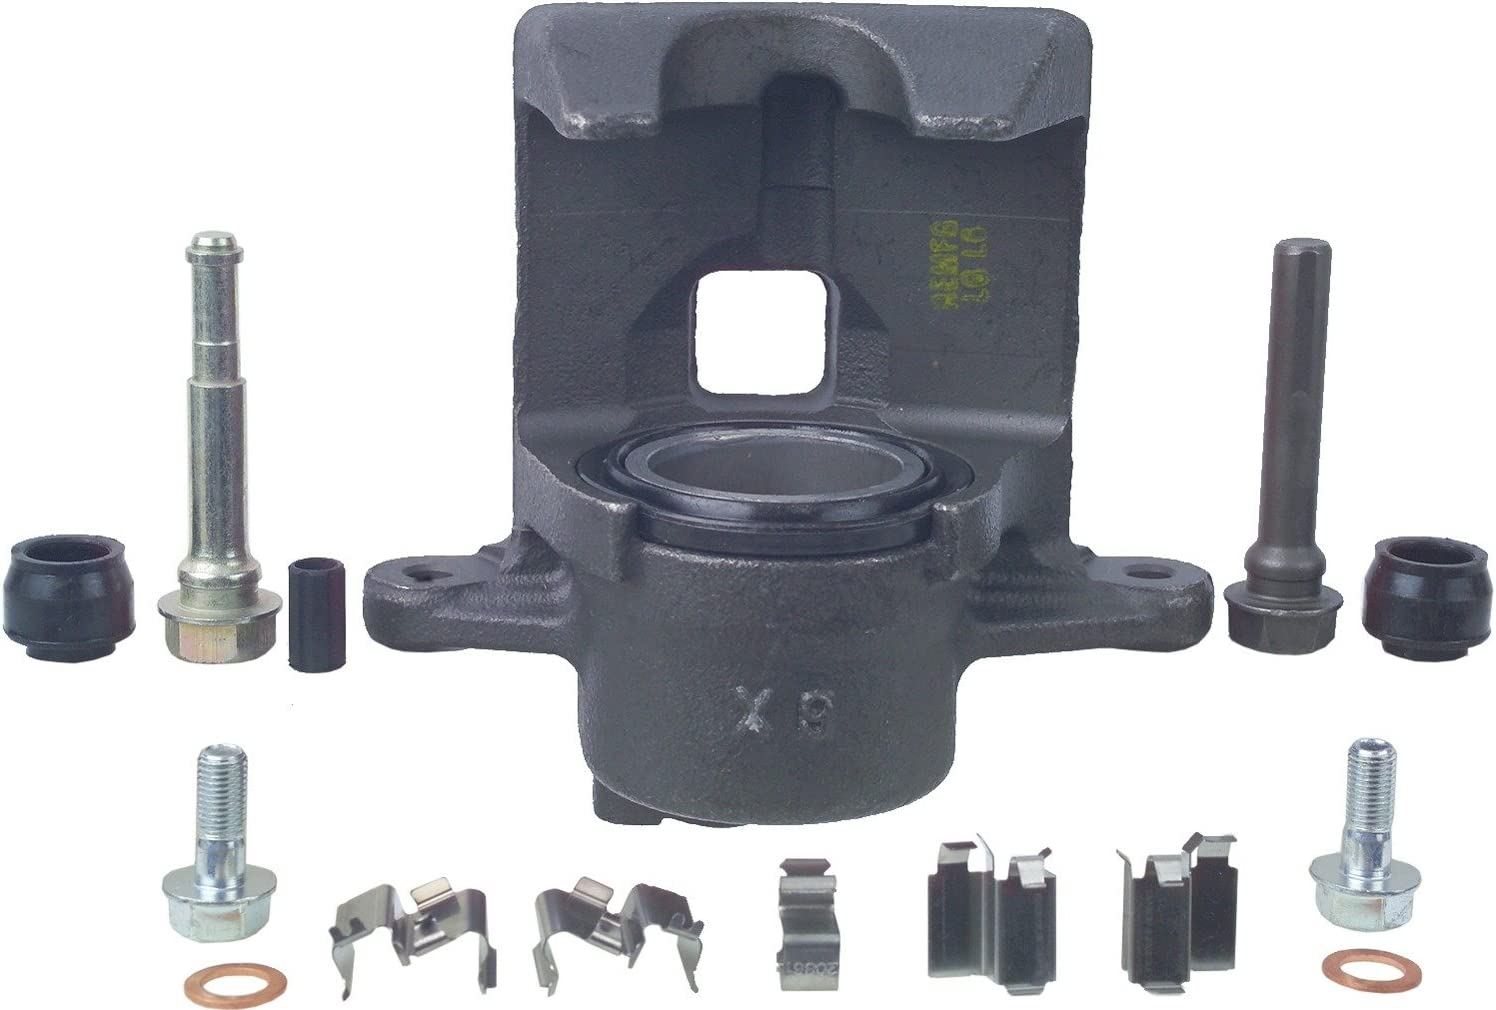 95-04 TACOMA Schnecke Engine Oil Pan Fits select 3.4L TOYOTA replaces 1210162070 TOP22A 96-02 4RUNNER 00-04 TUNDRA